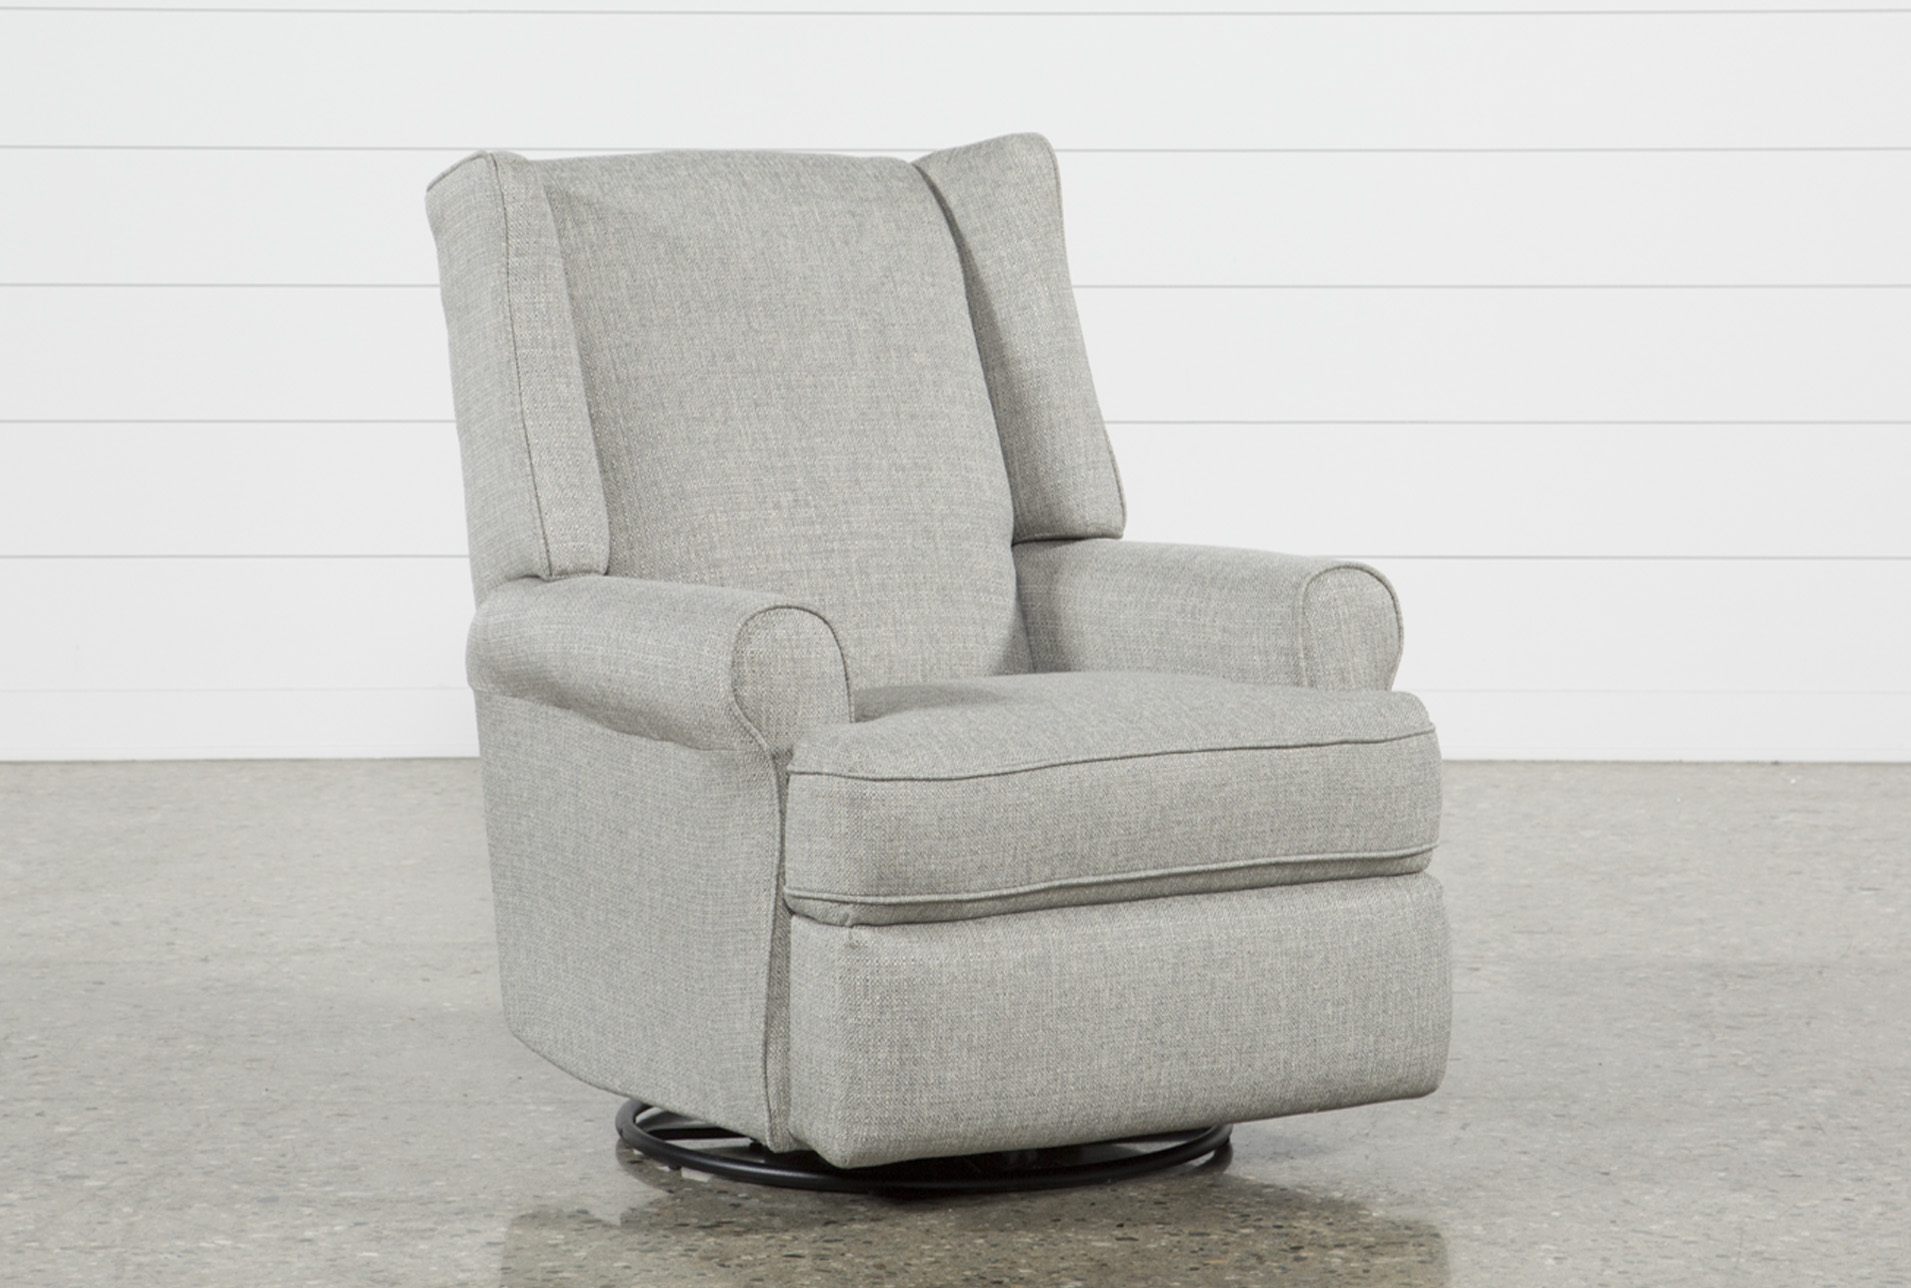 Mari Swivel Glider Recliner (Qty: 1) has been successfully added to your  Cart.